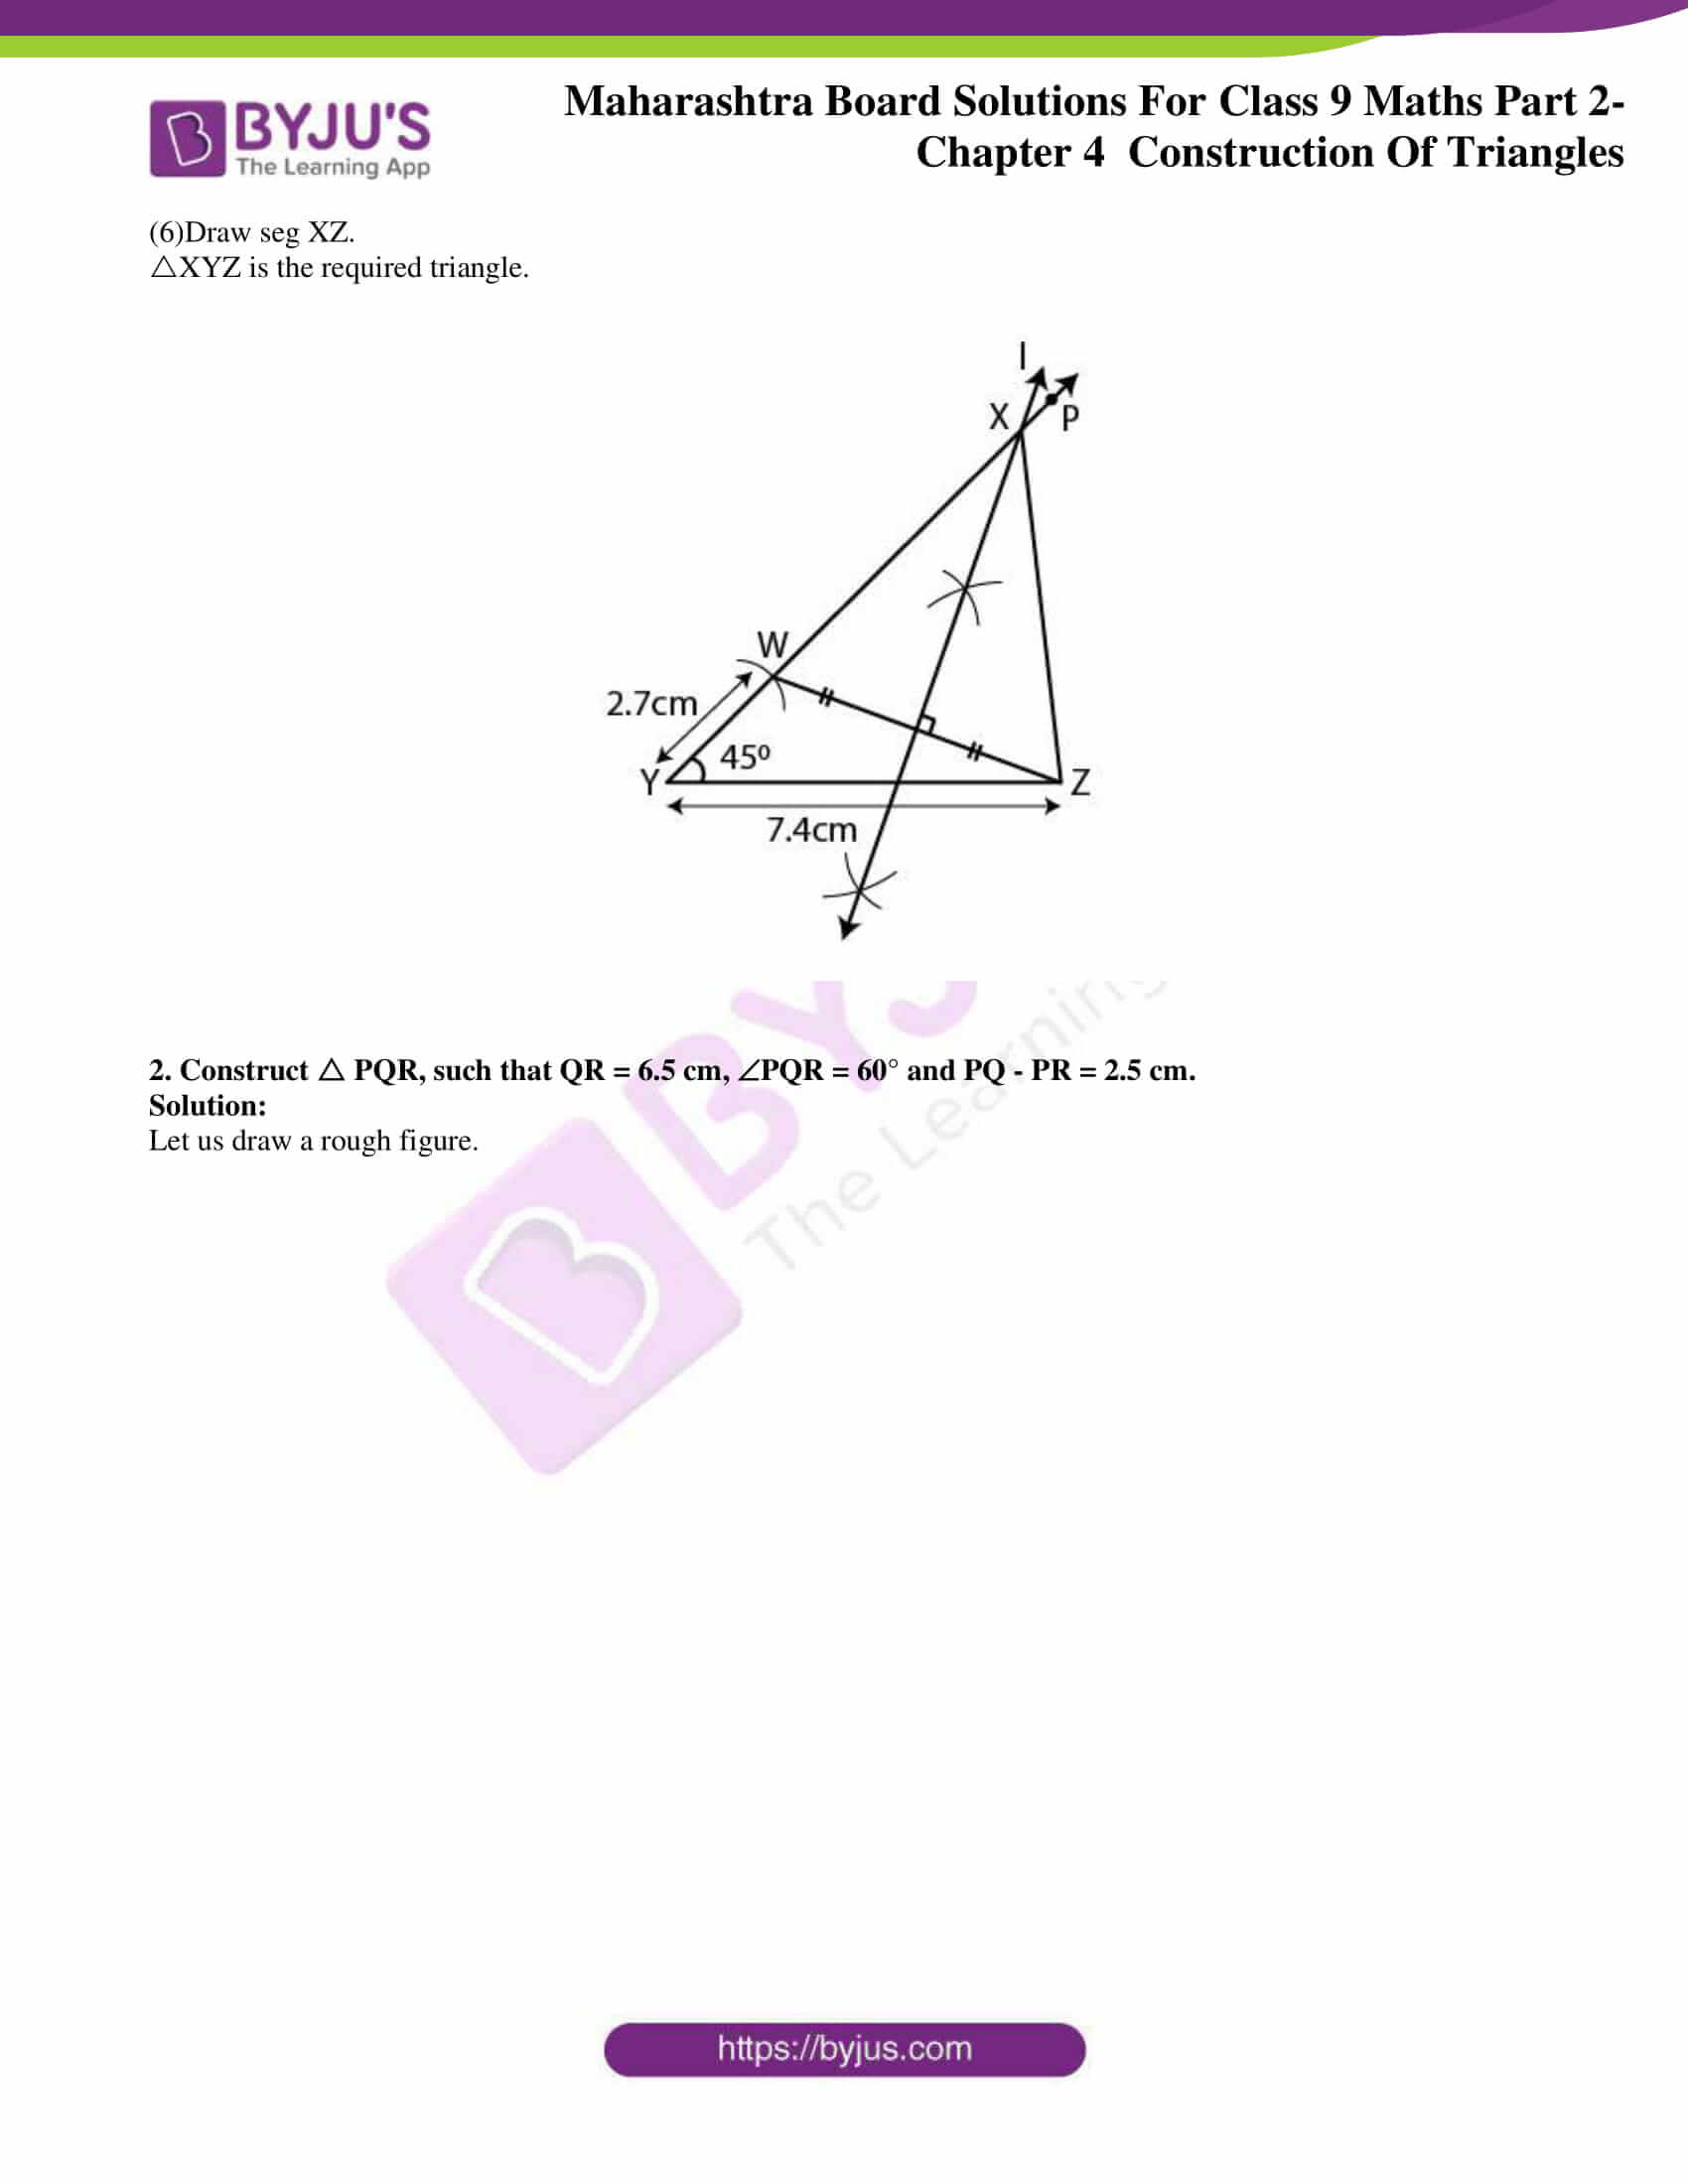 msbshse solutions for class 9 maths part 2 chapter 4 07